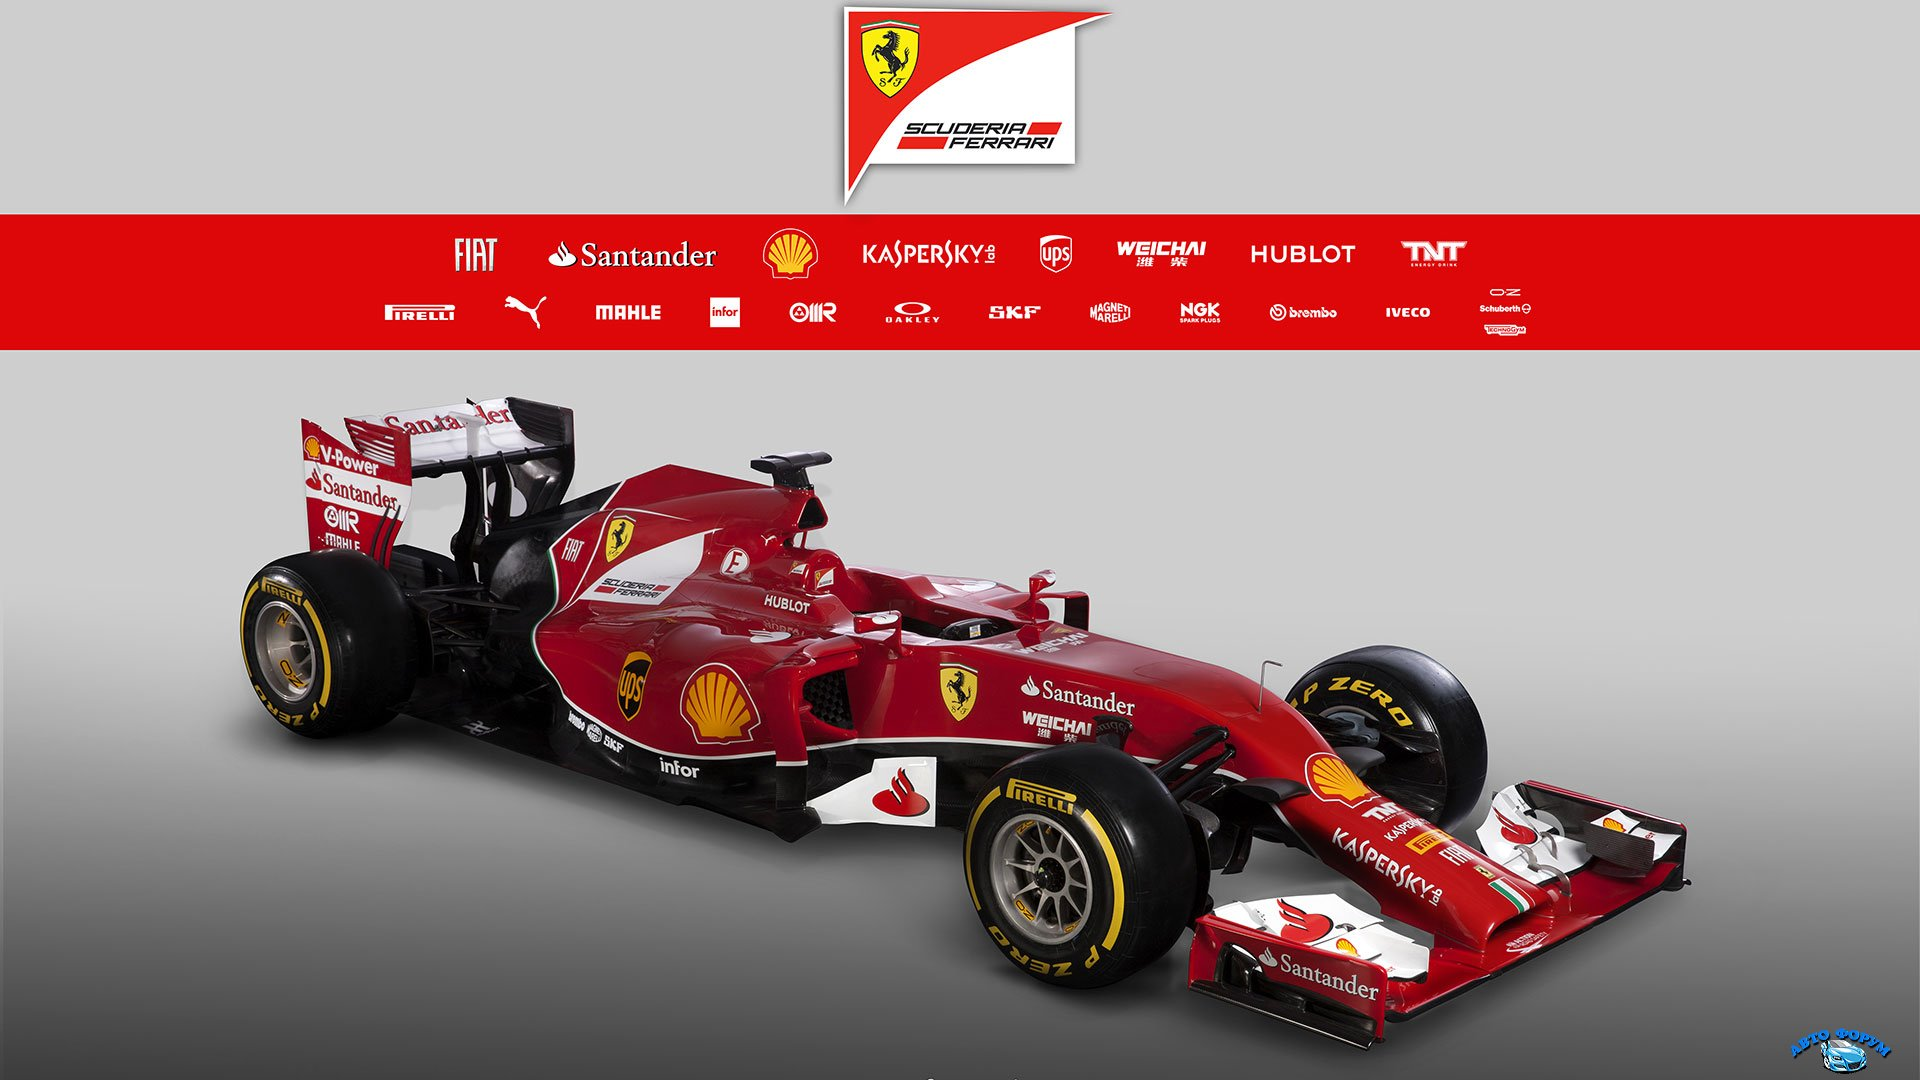 Ferrari-F14T-rightfront-view-F1-Fansite.jpg